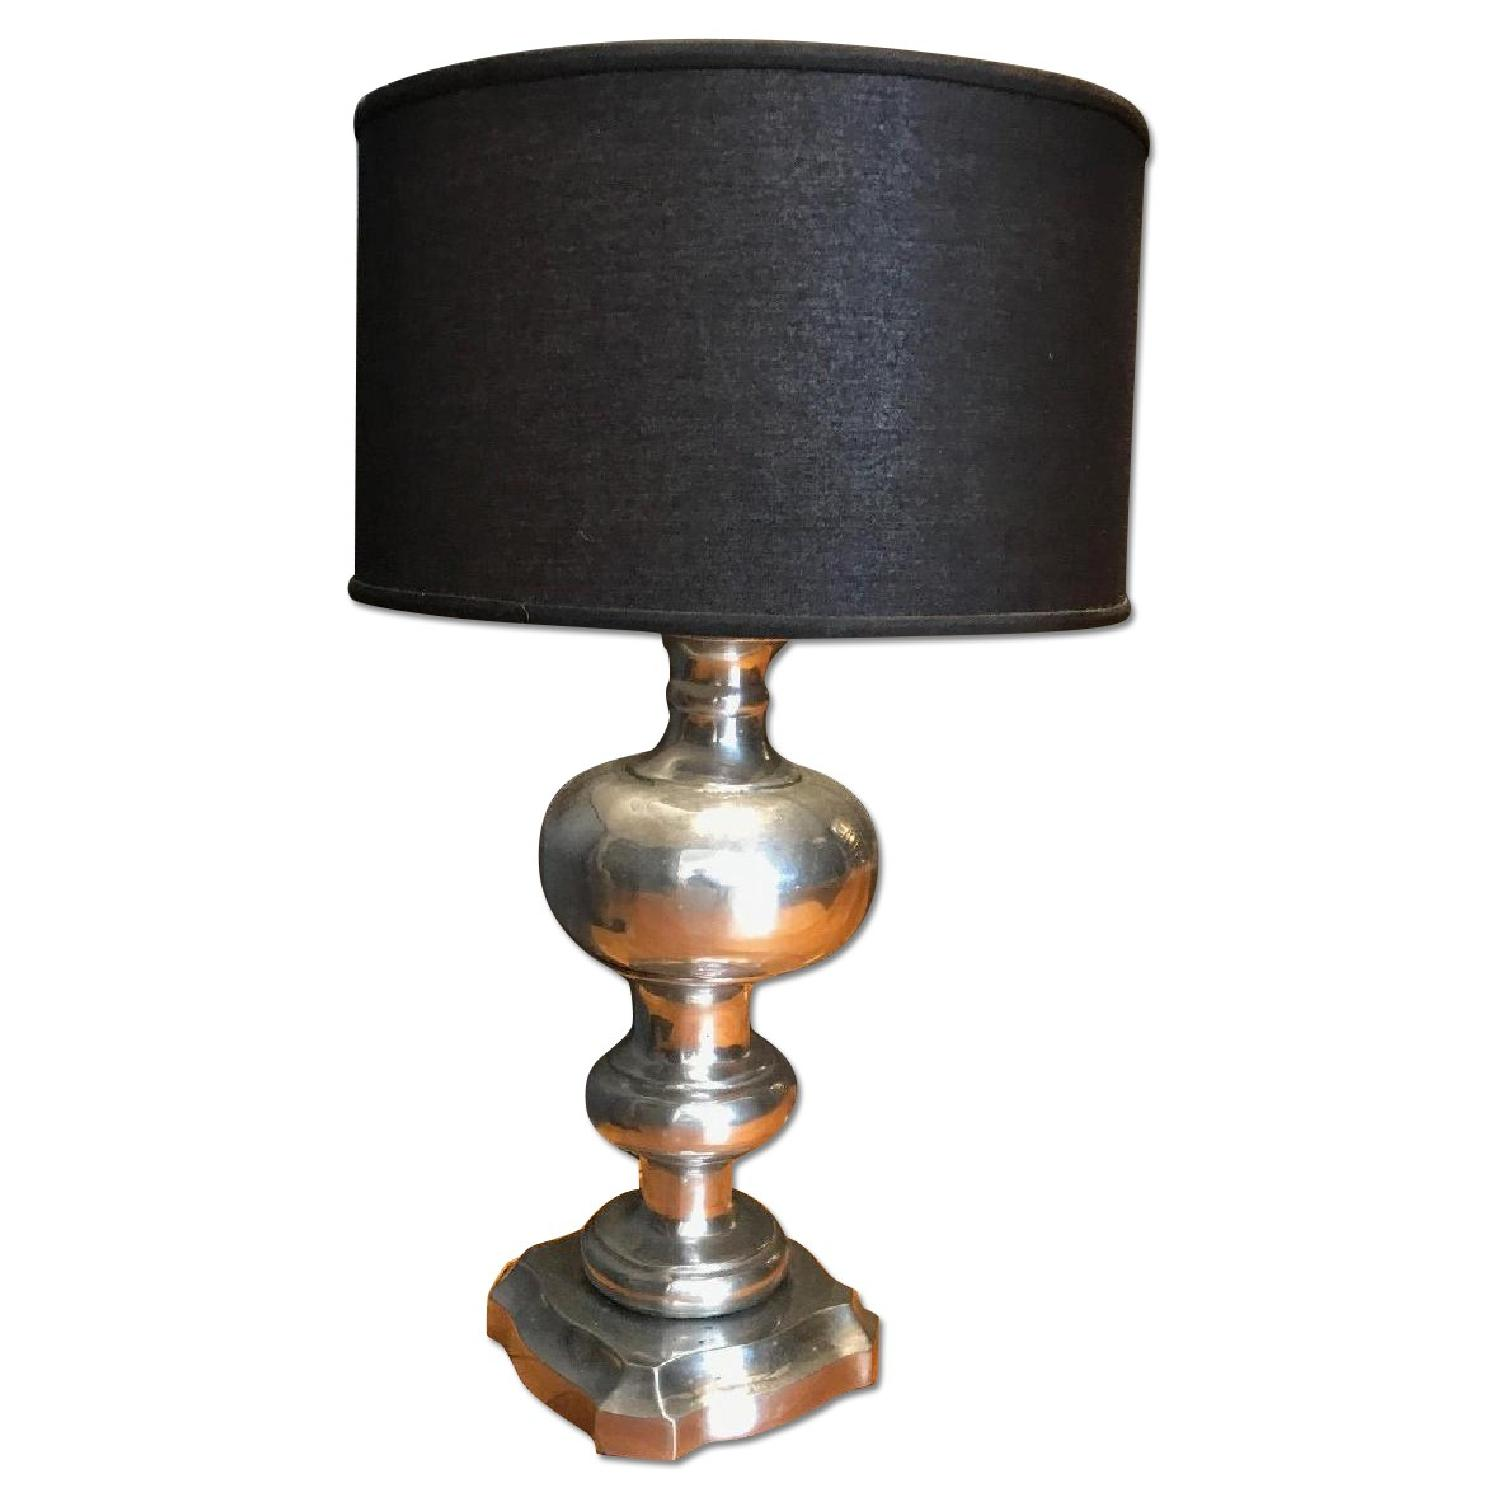 Antique pewter silver table lamp w black shade aptdeco antique pewter silver table lamp w black shade geotapseo Image collections